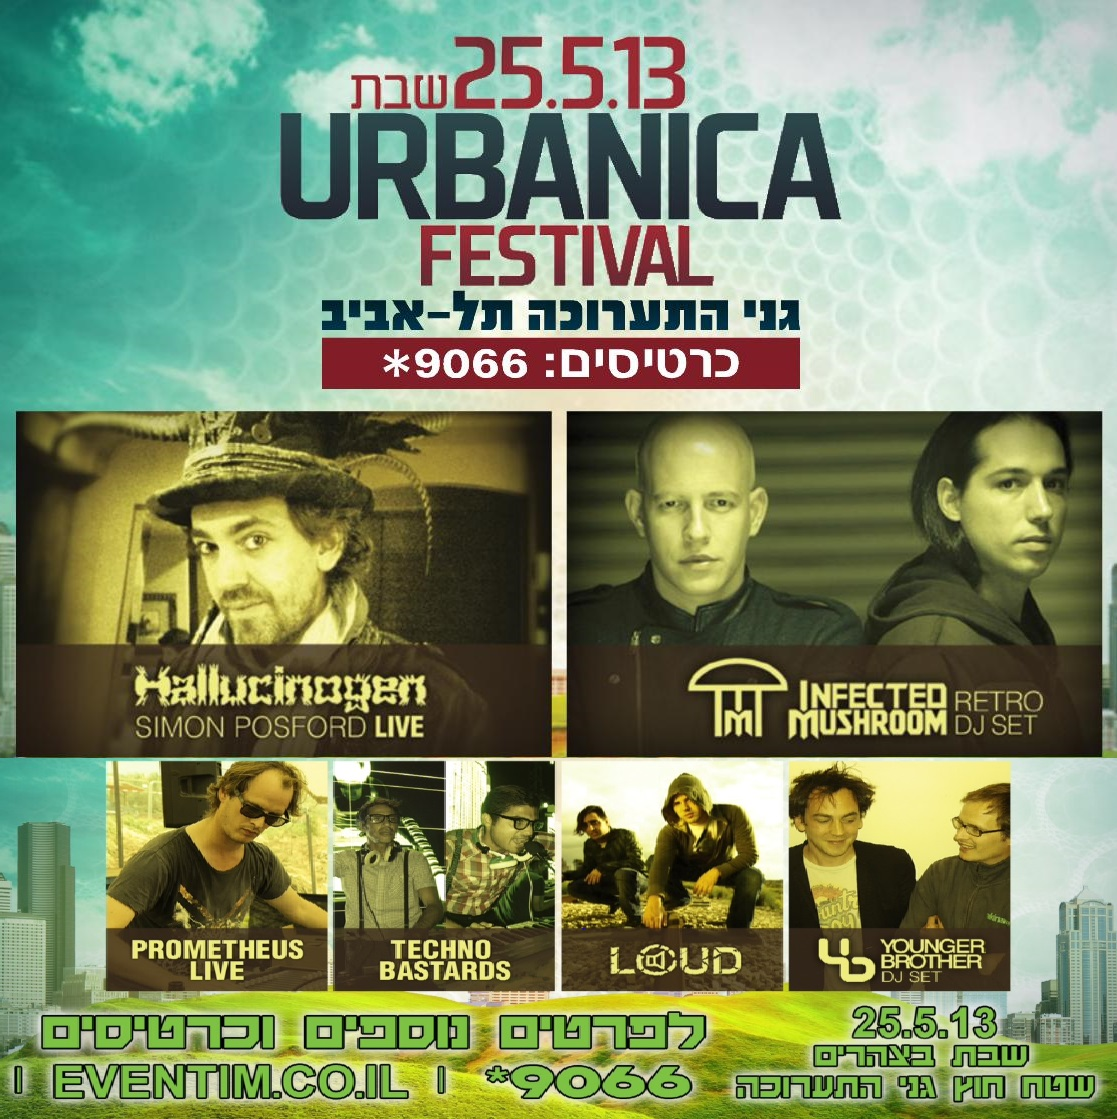 Infected Mushroom @ Israel, Tel Aviv - Urbanica Festival  Hasamba Productions 2013c flyer